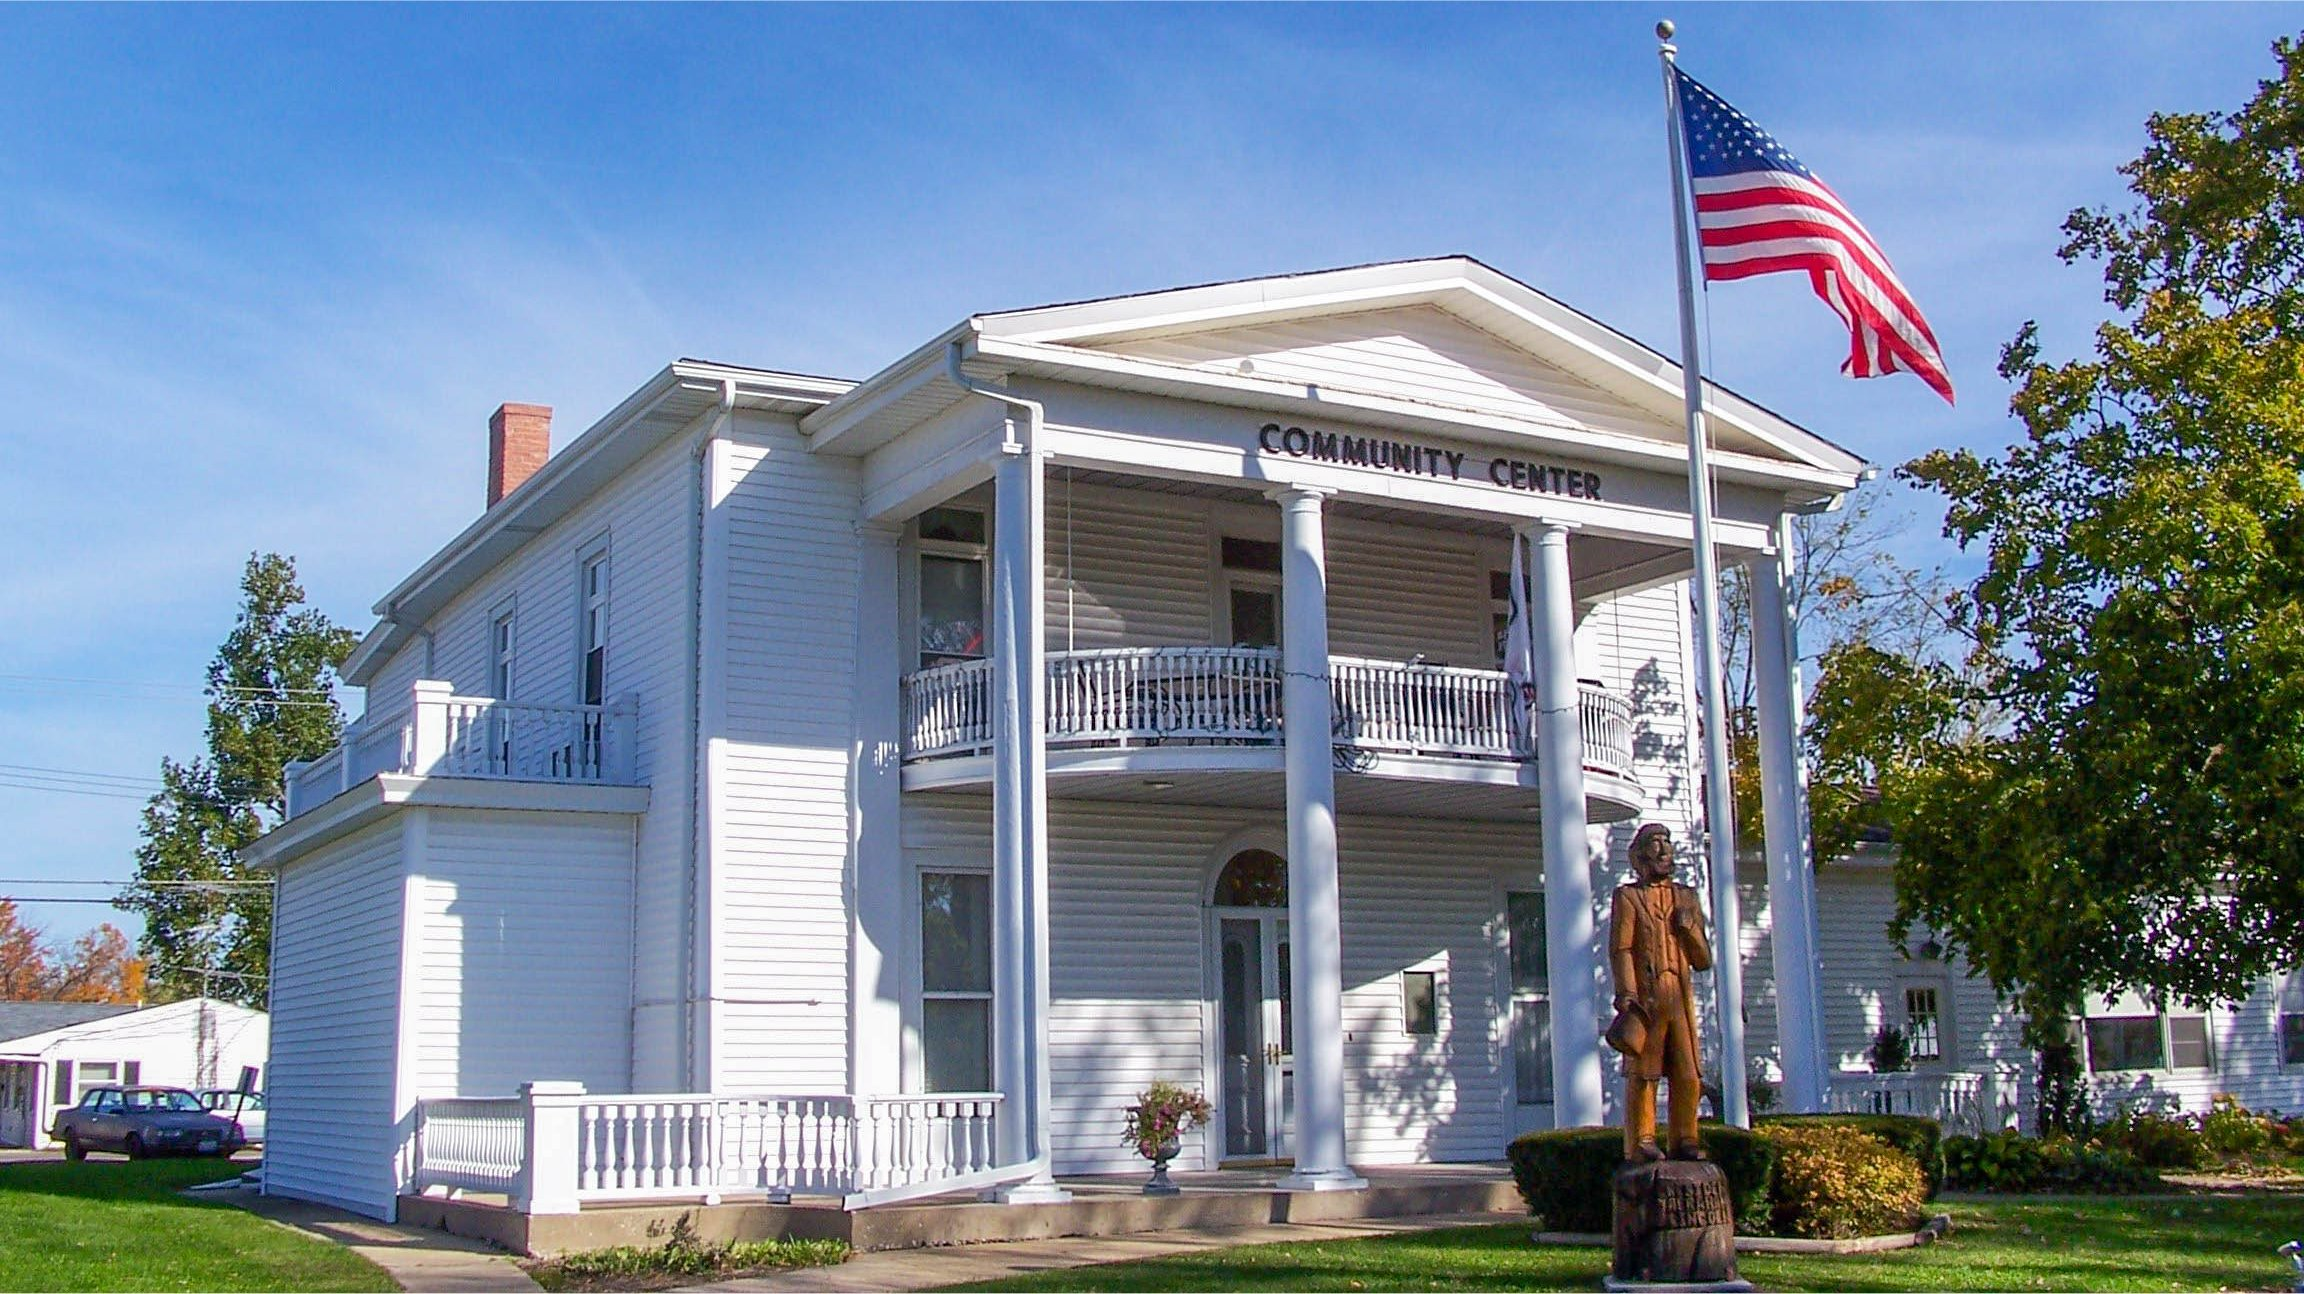 The Pike County Visitors Center in Pittsfield